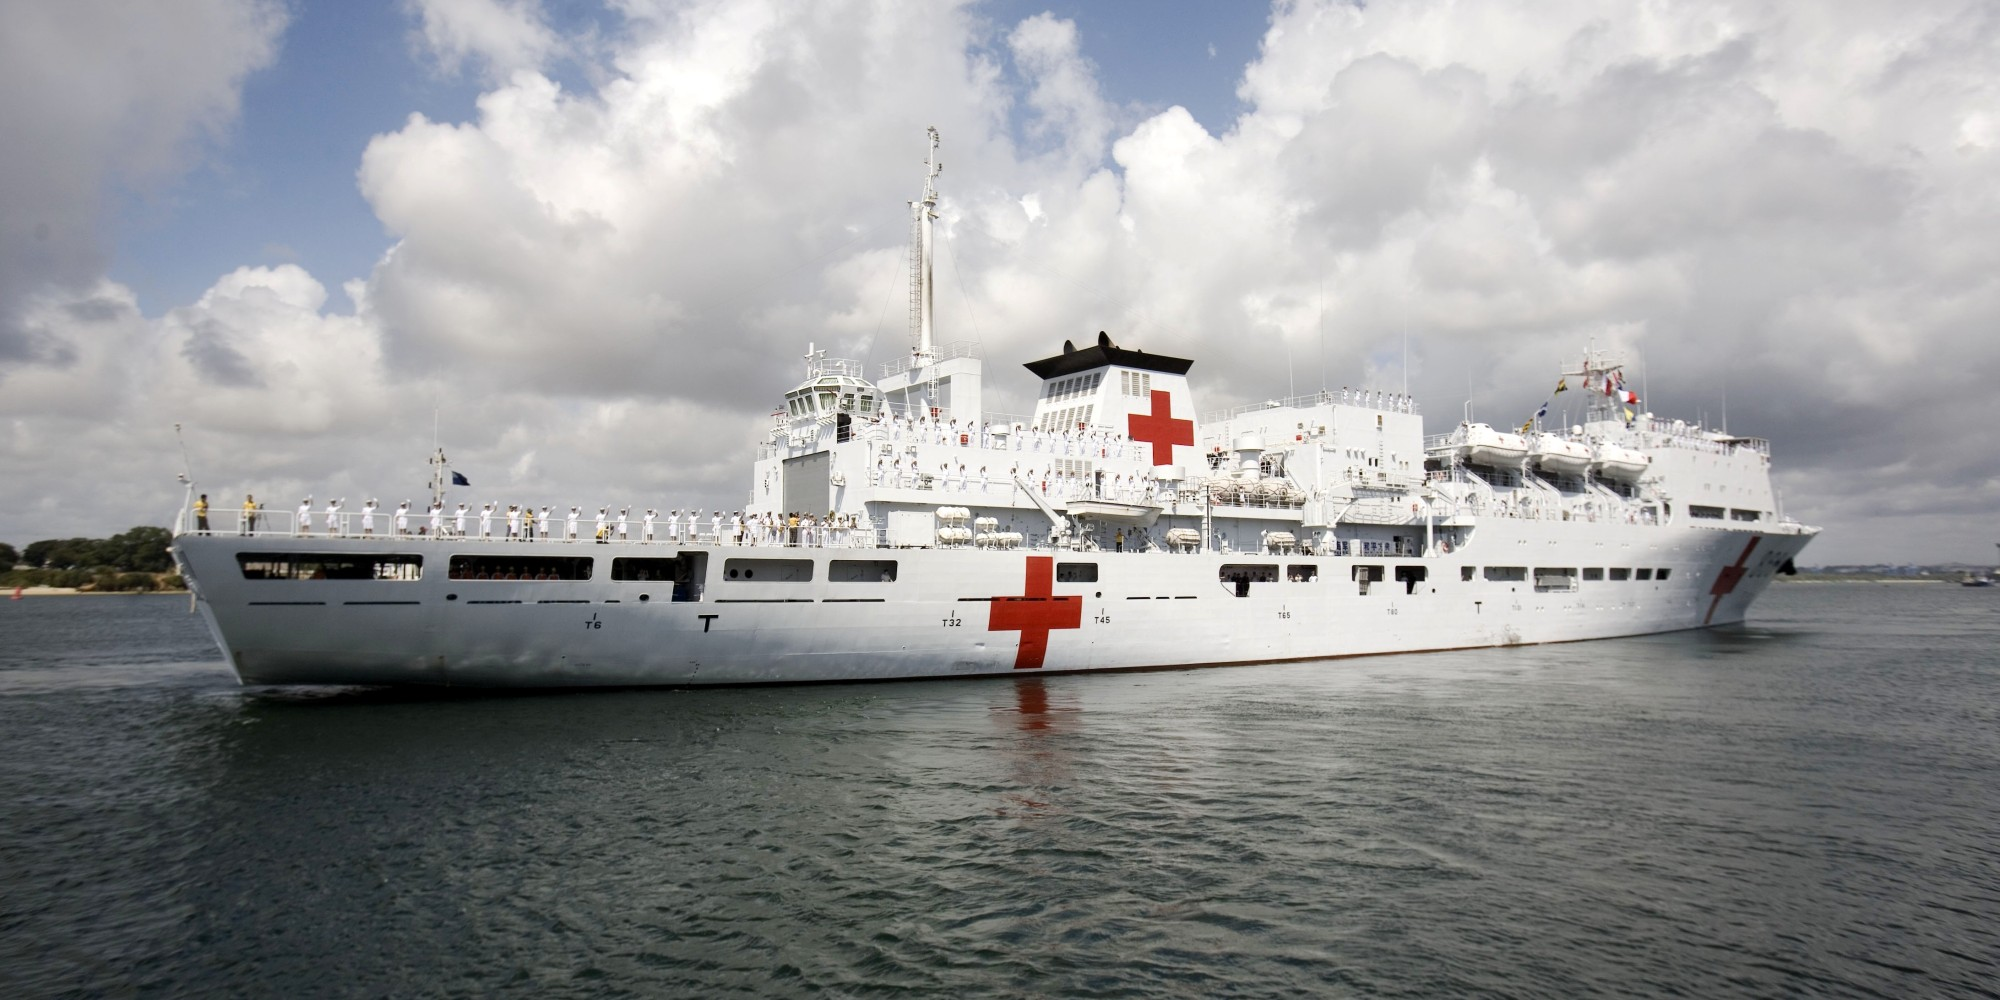 Chinas hospital ship stays home while typhoon death toll rises in chinas hospital ship stays home while typhoon death toll rises in philippines huffpost stopboris Images